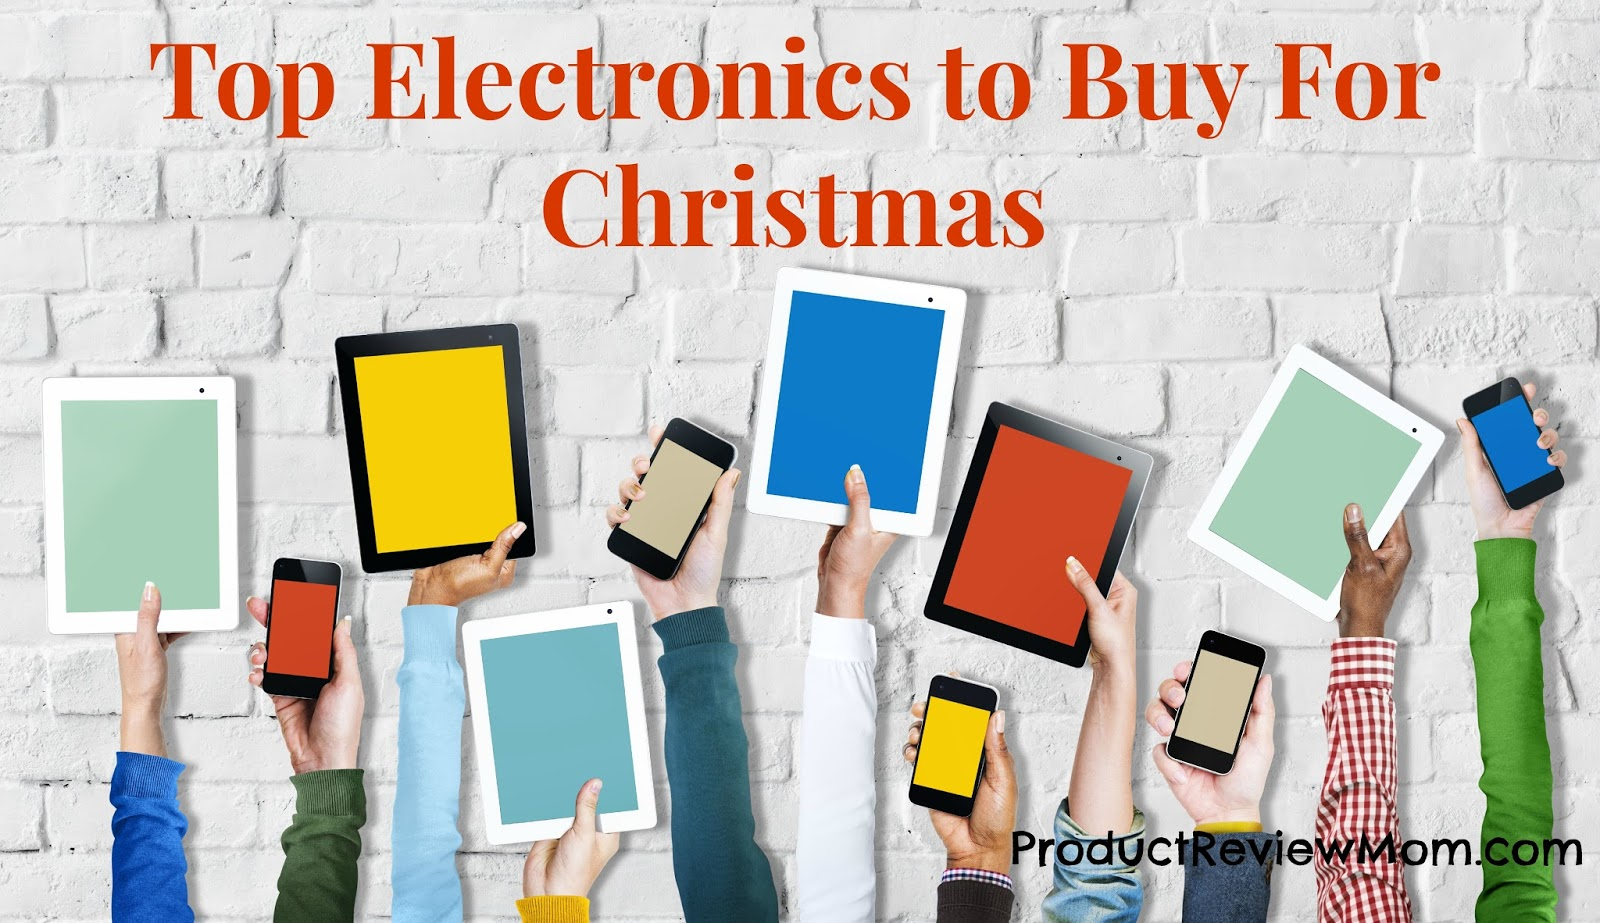 Top Electronics to Buy For Christmas